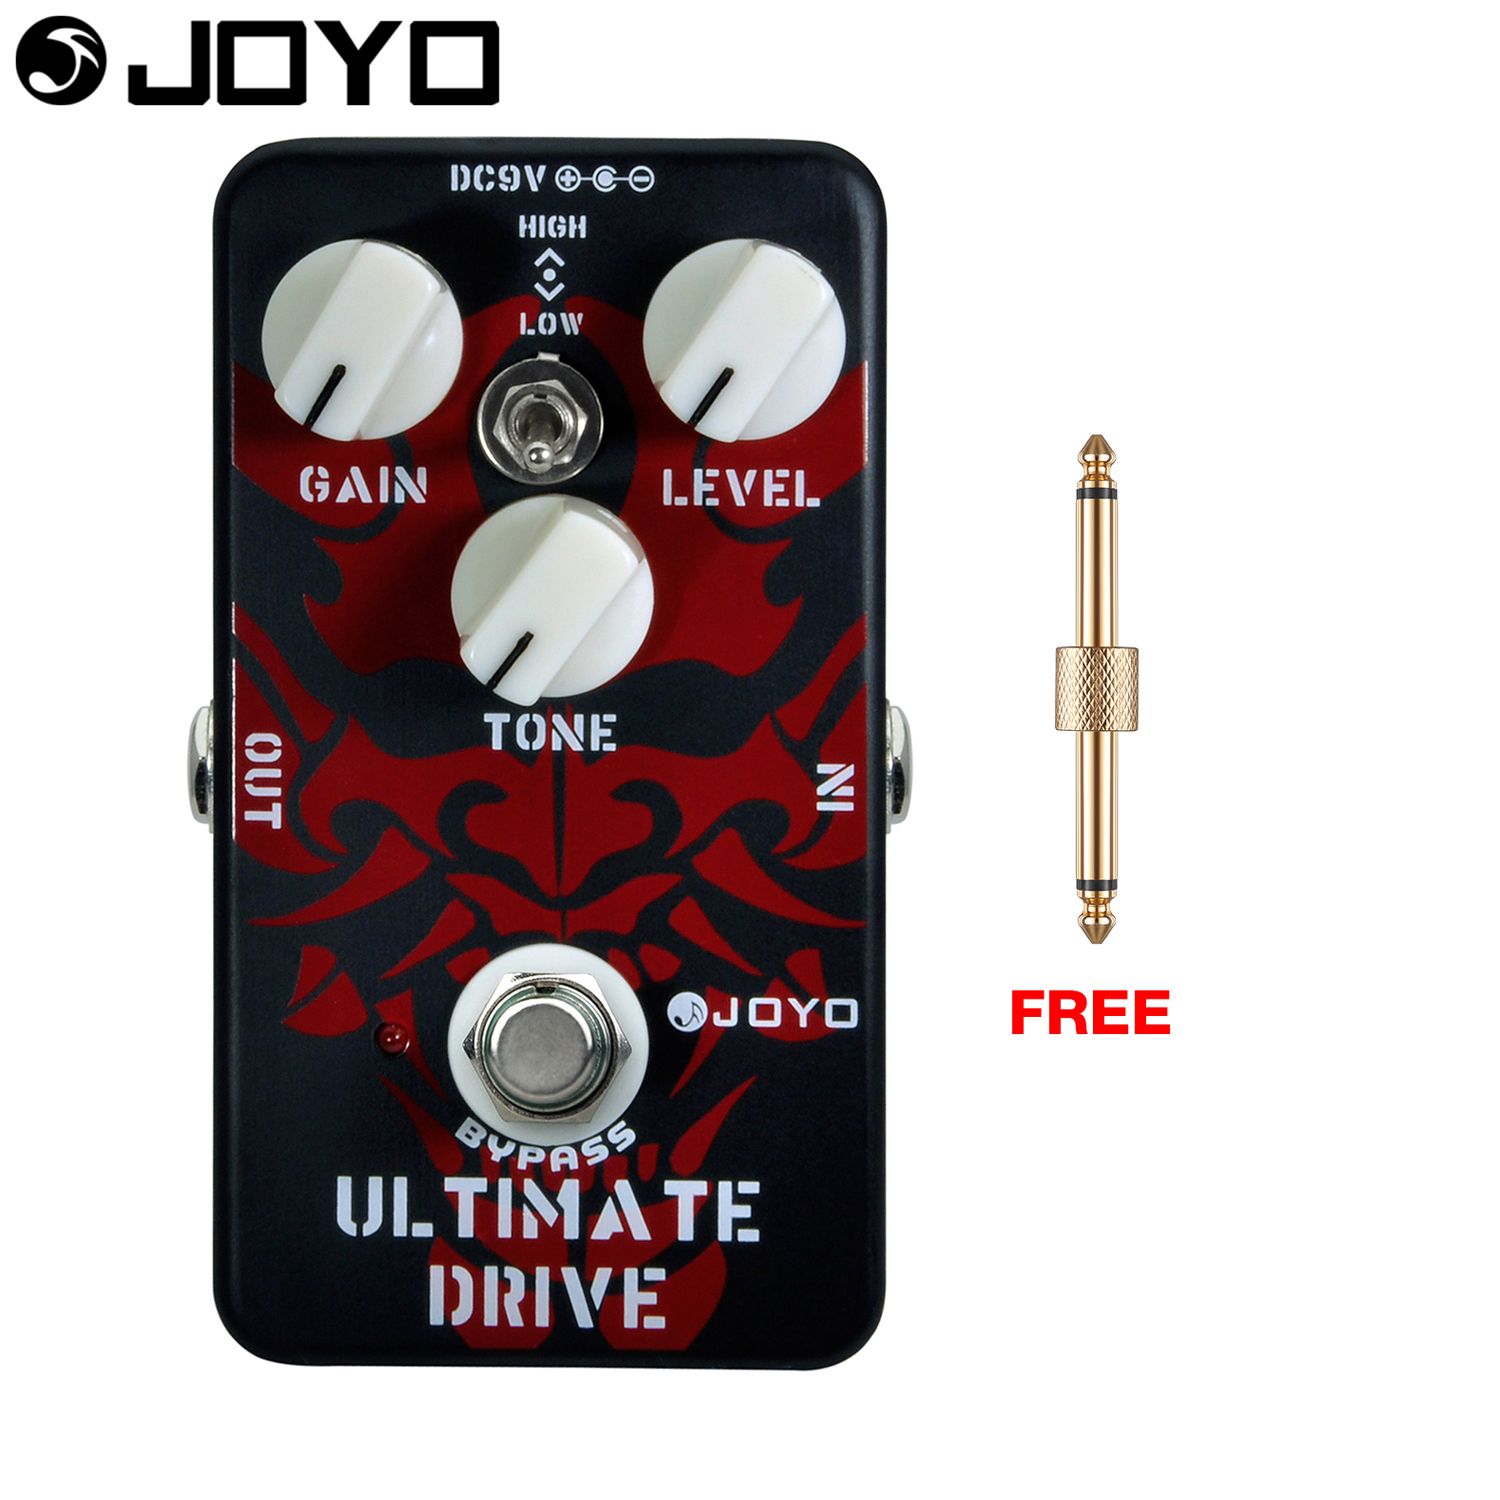 Joyo Ultimate Drive Electric Guitar Effect Pedal True Bypass High and Low Tone Switch JF-02 with Free Connector aroma adr 3 dumbler amp simulator guitar effect pedal mini single pedals with true bypass aluminium alloy guitar accessories